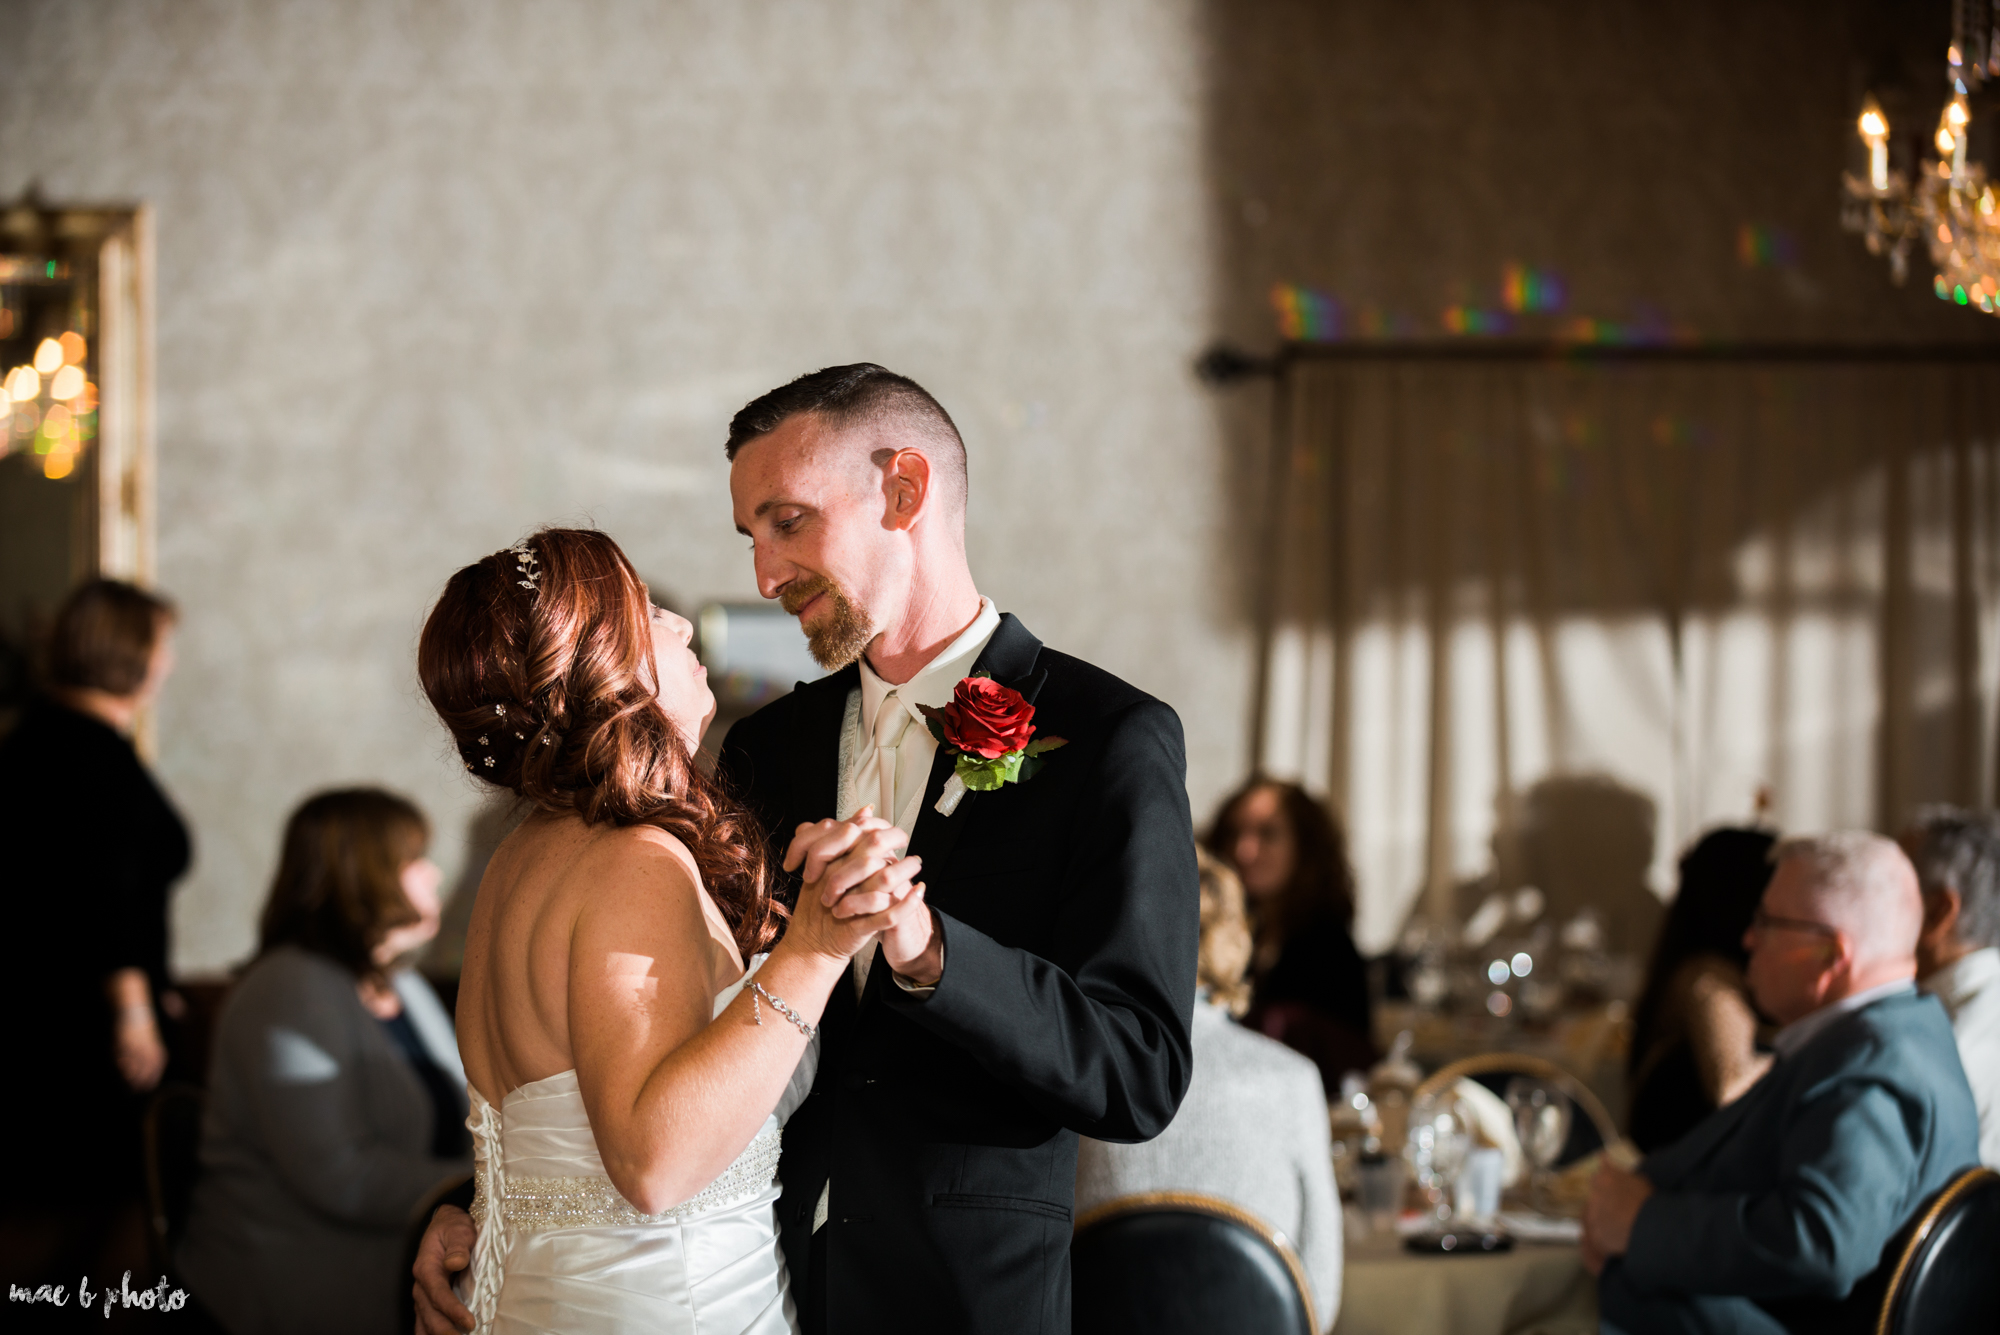 tracey and aaron's personal fall wedding at tiffany's banquet center in brookfield ohio-100.jpg